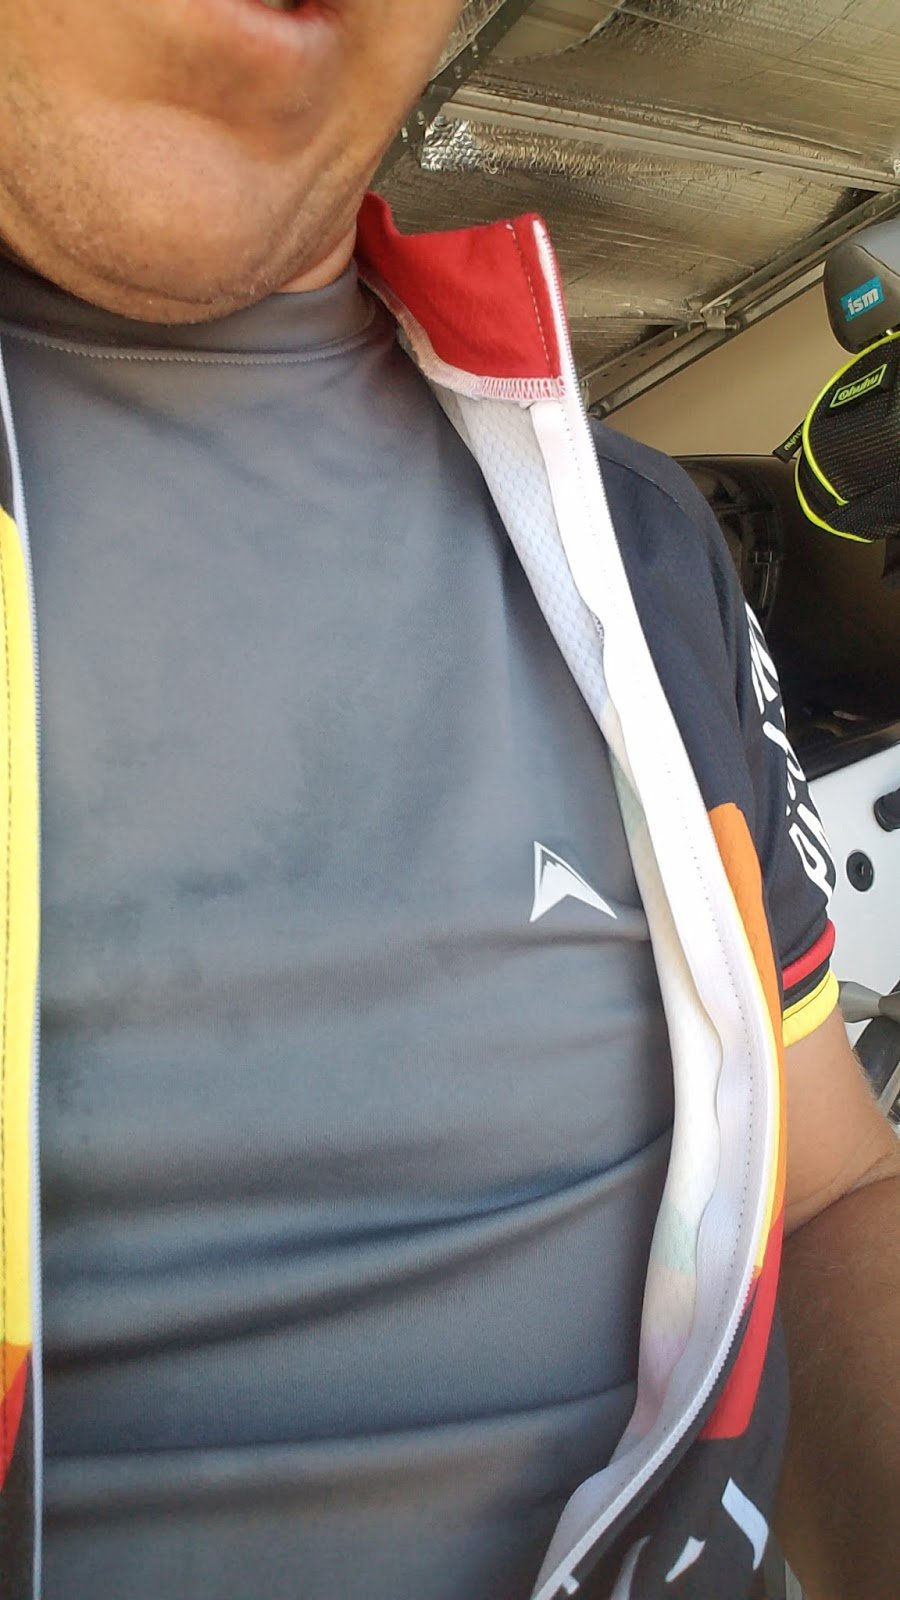 See how #ArcticCool helped @timhakr while #cycling in hot weather! https://t.co/sbpLqX8VUP https://t.co/NobGj6KJ5Z